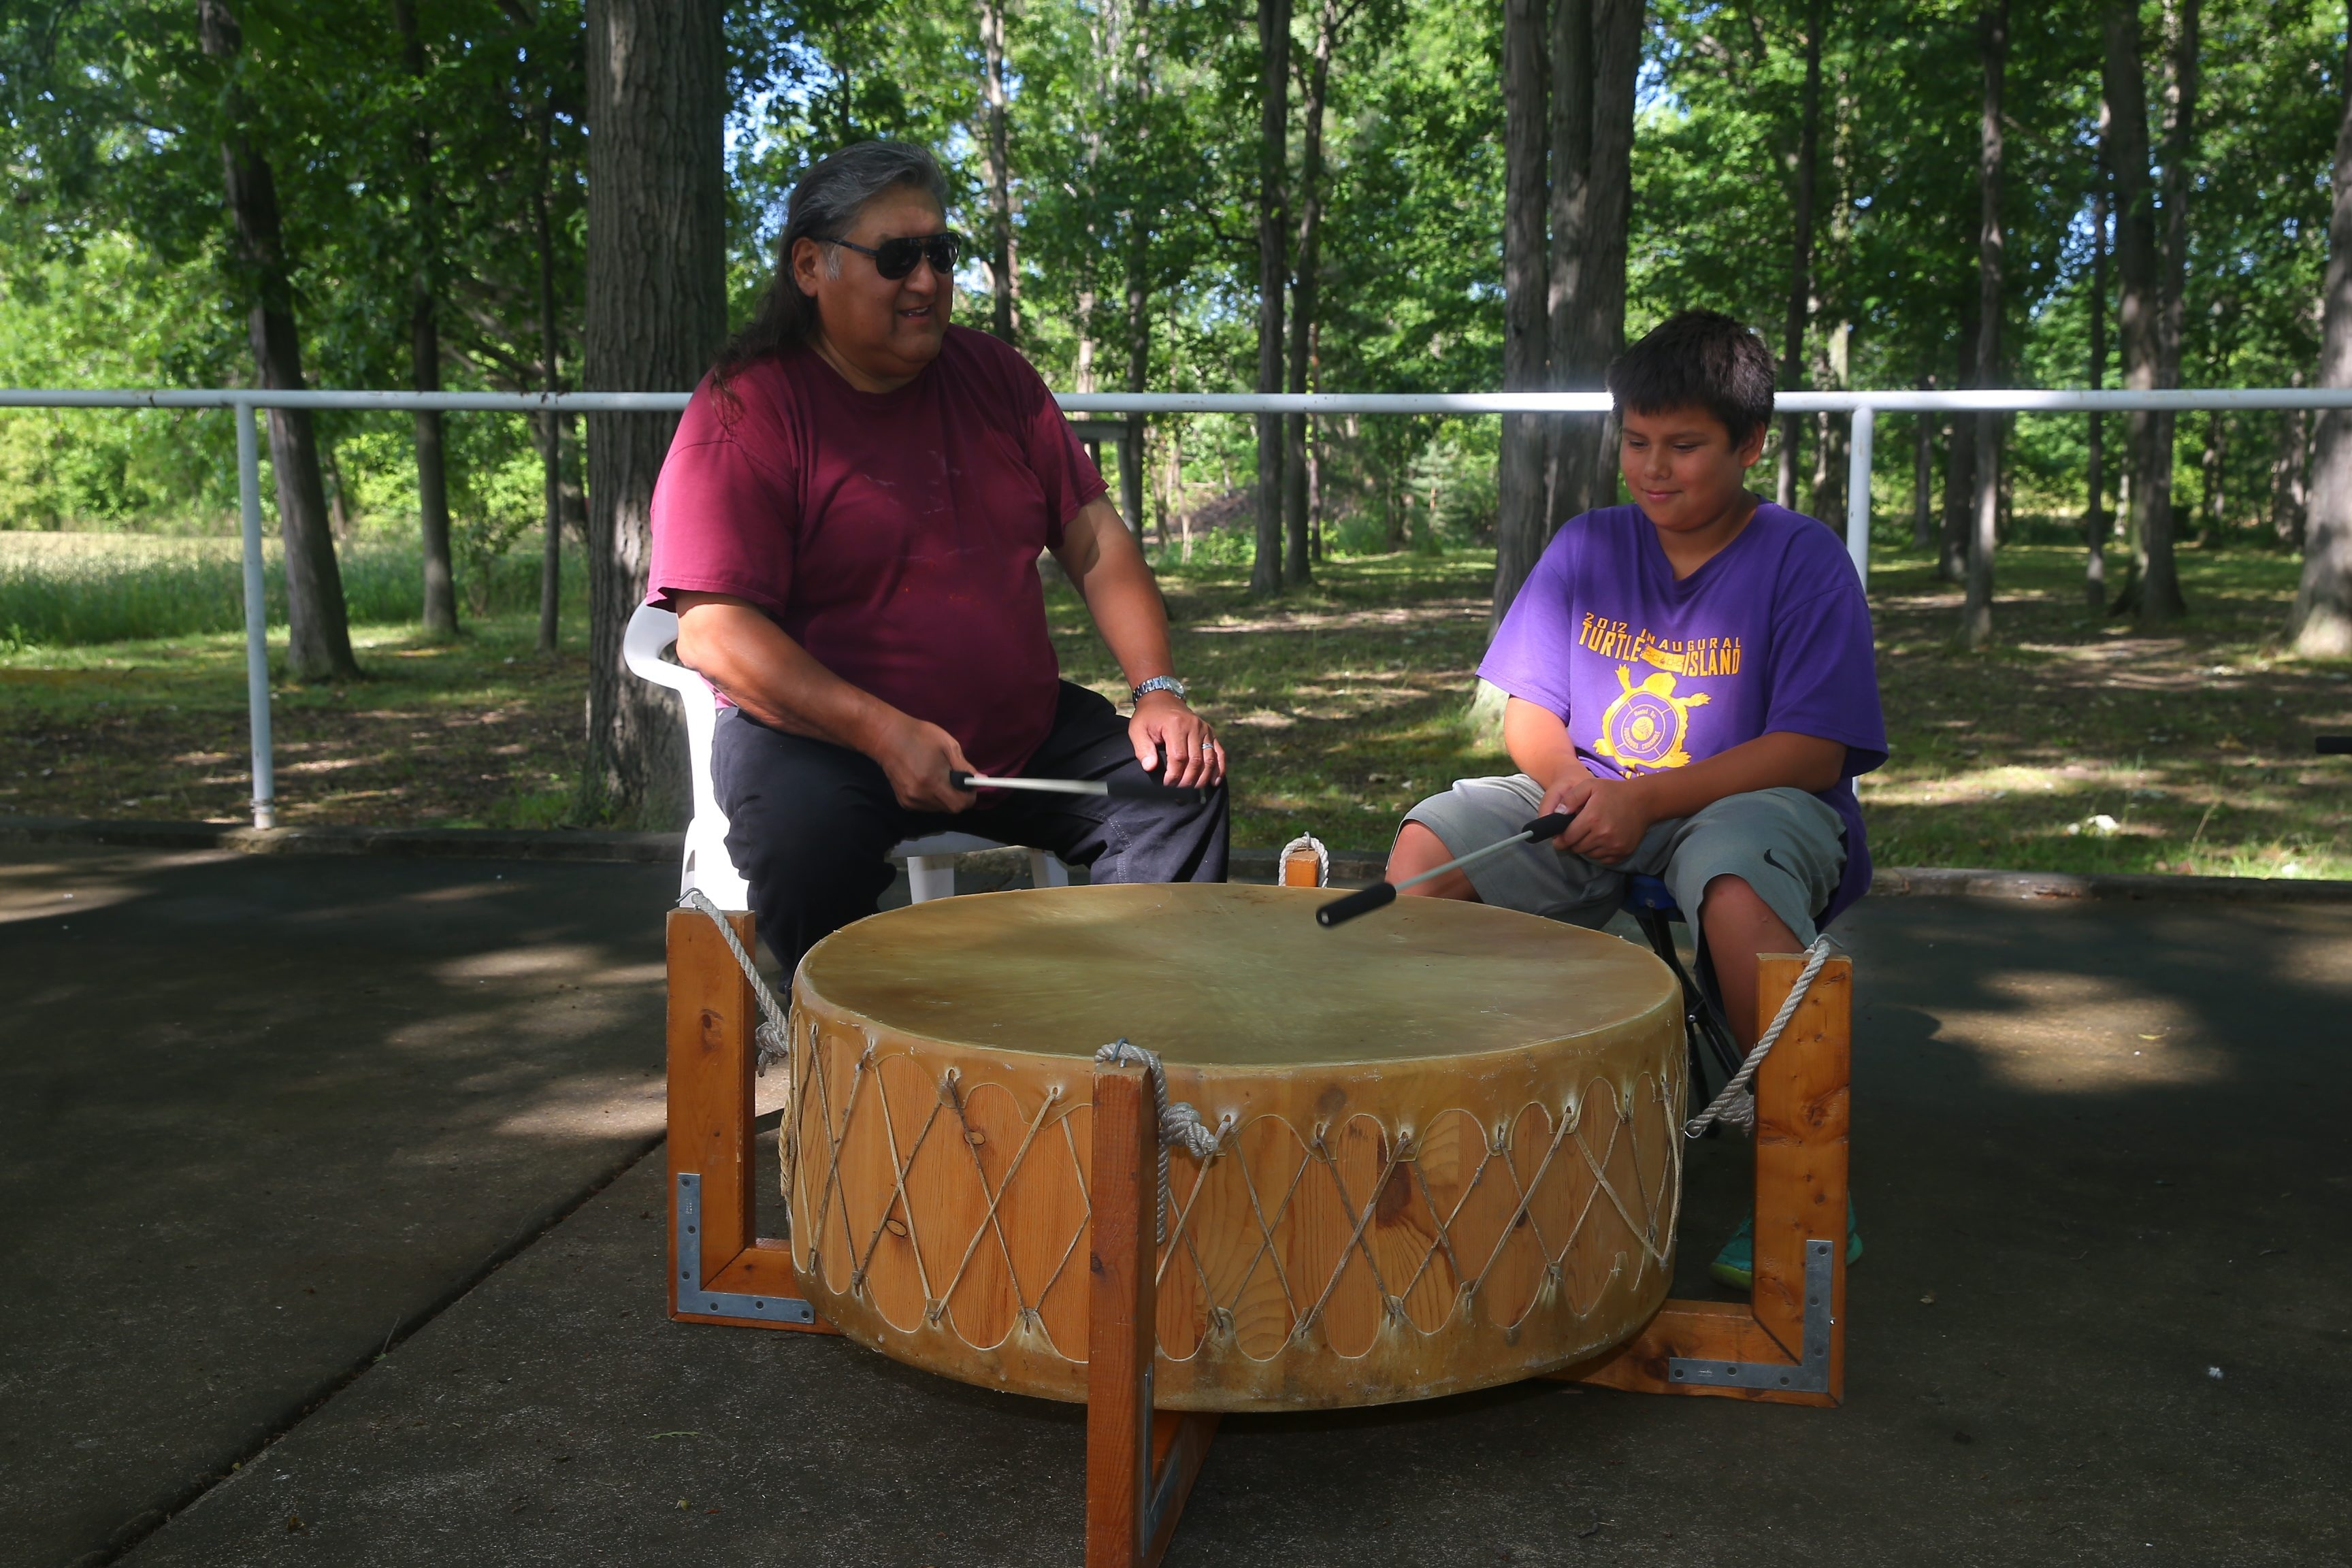 Neil Patterson, left, a Tuscarora Native from the Sand Turtle Clan, as been the organizer for more than 30 years of the Tuscarora Nation Picnic and Field Days. He is pictured with his grandson Alex Cowdy, 11, of the White Bear clan. (John Hickey/Buffalo News)